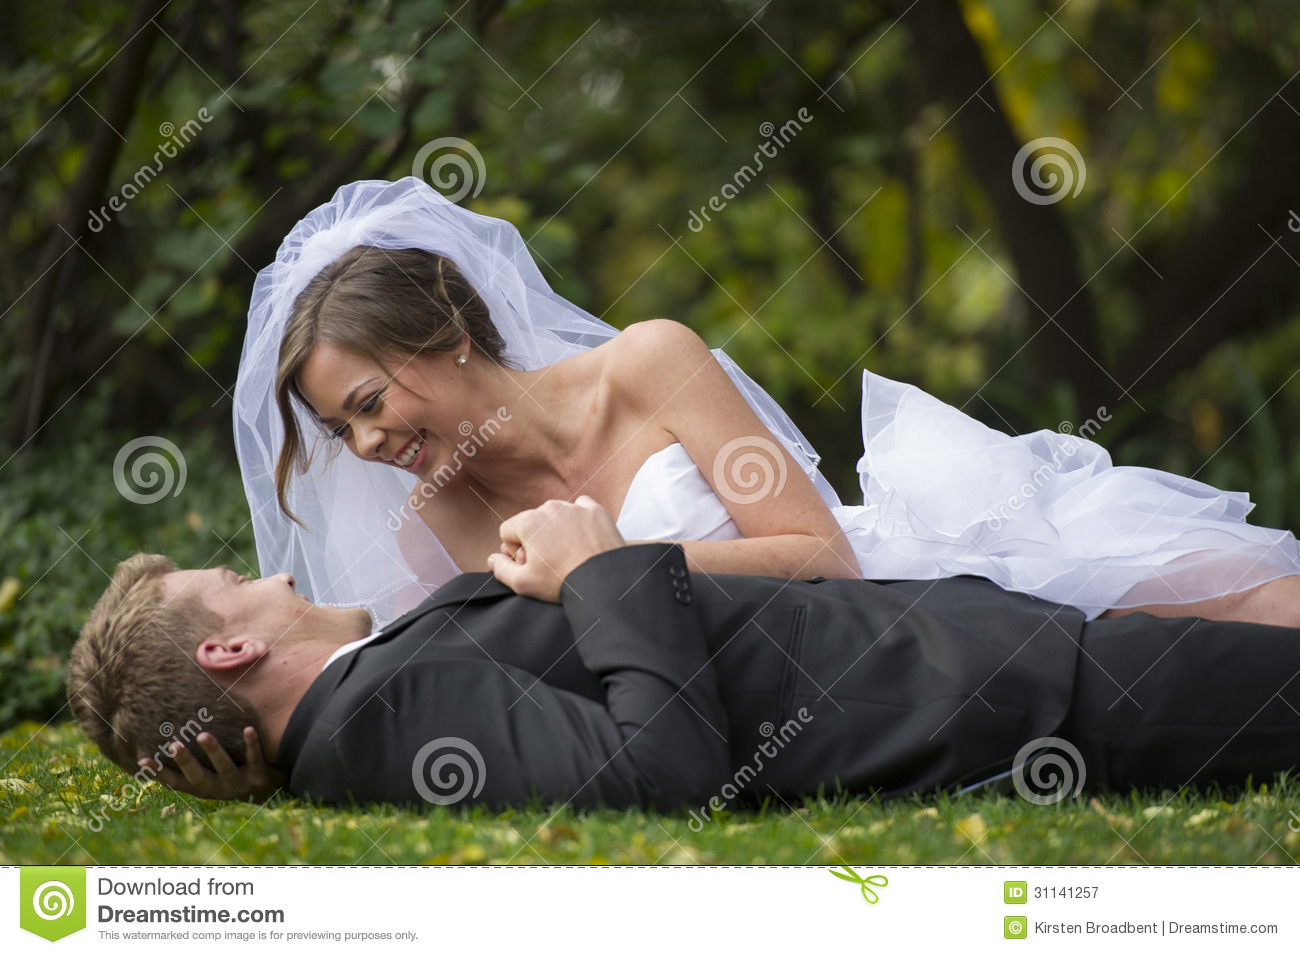 Newly married couple royalty free stock photography image 31141257